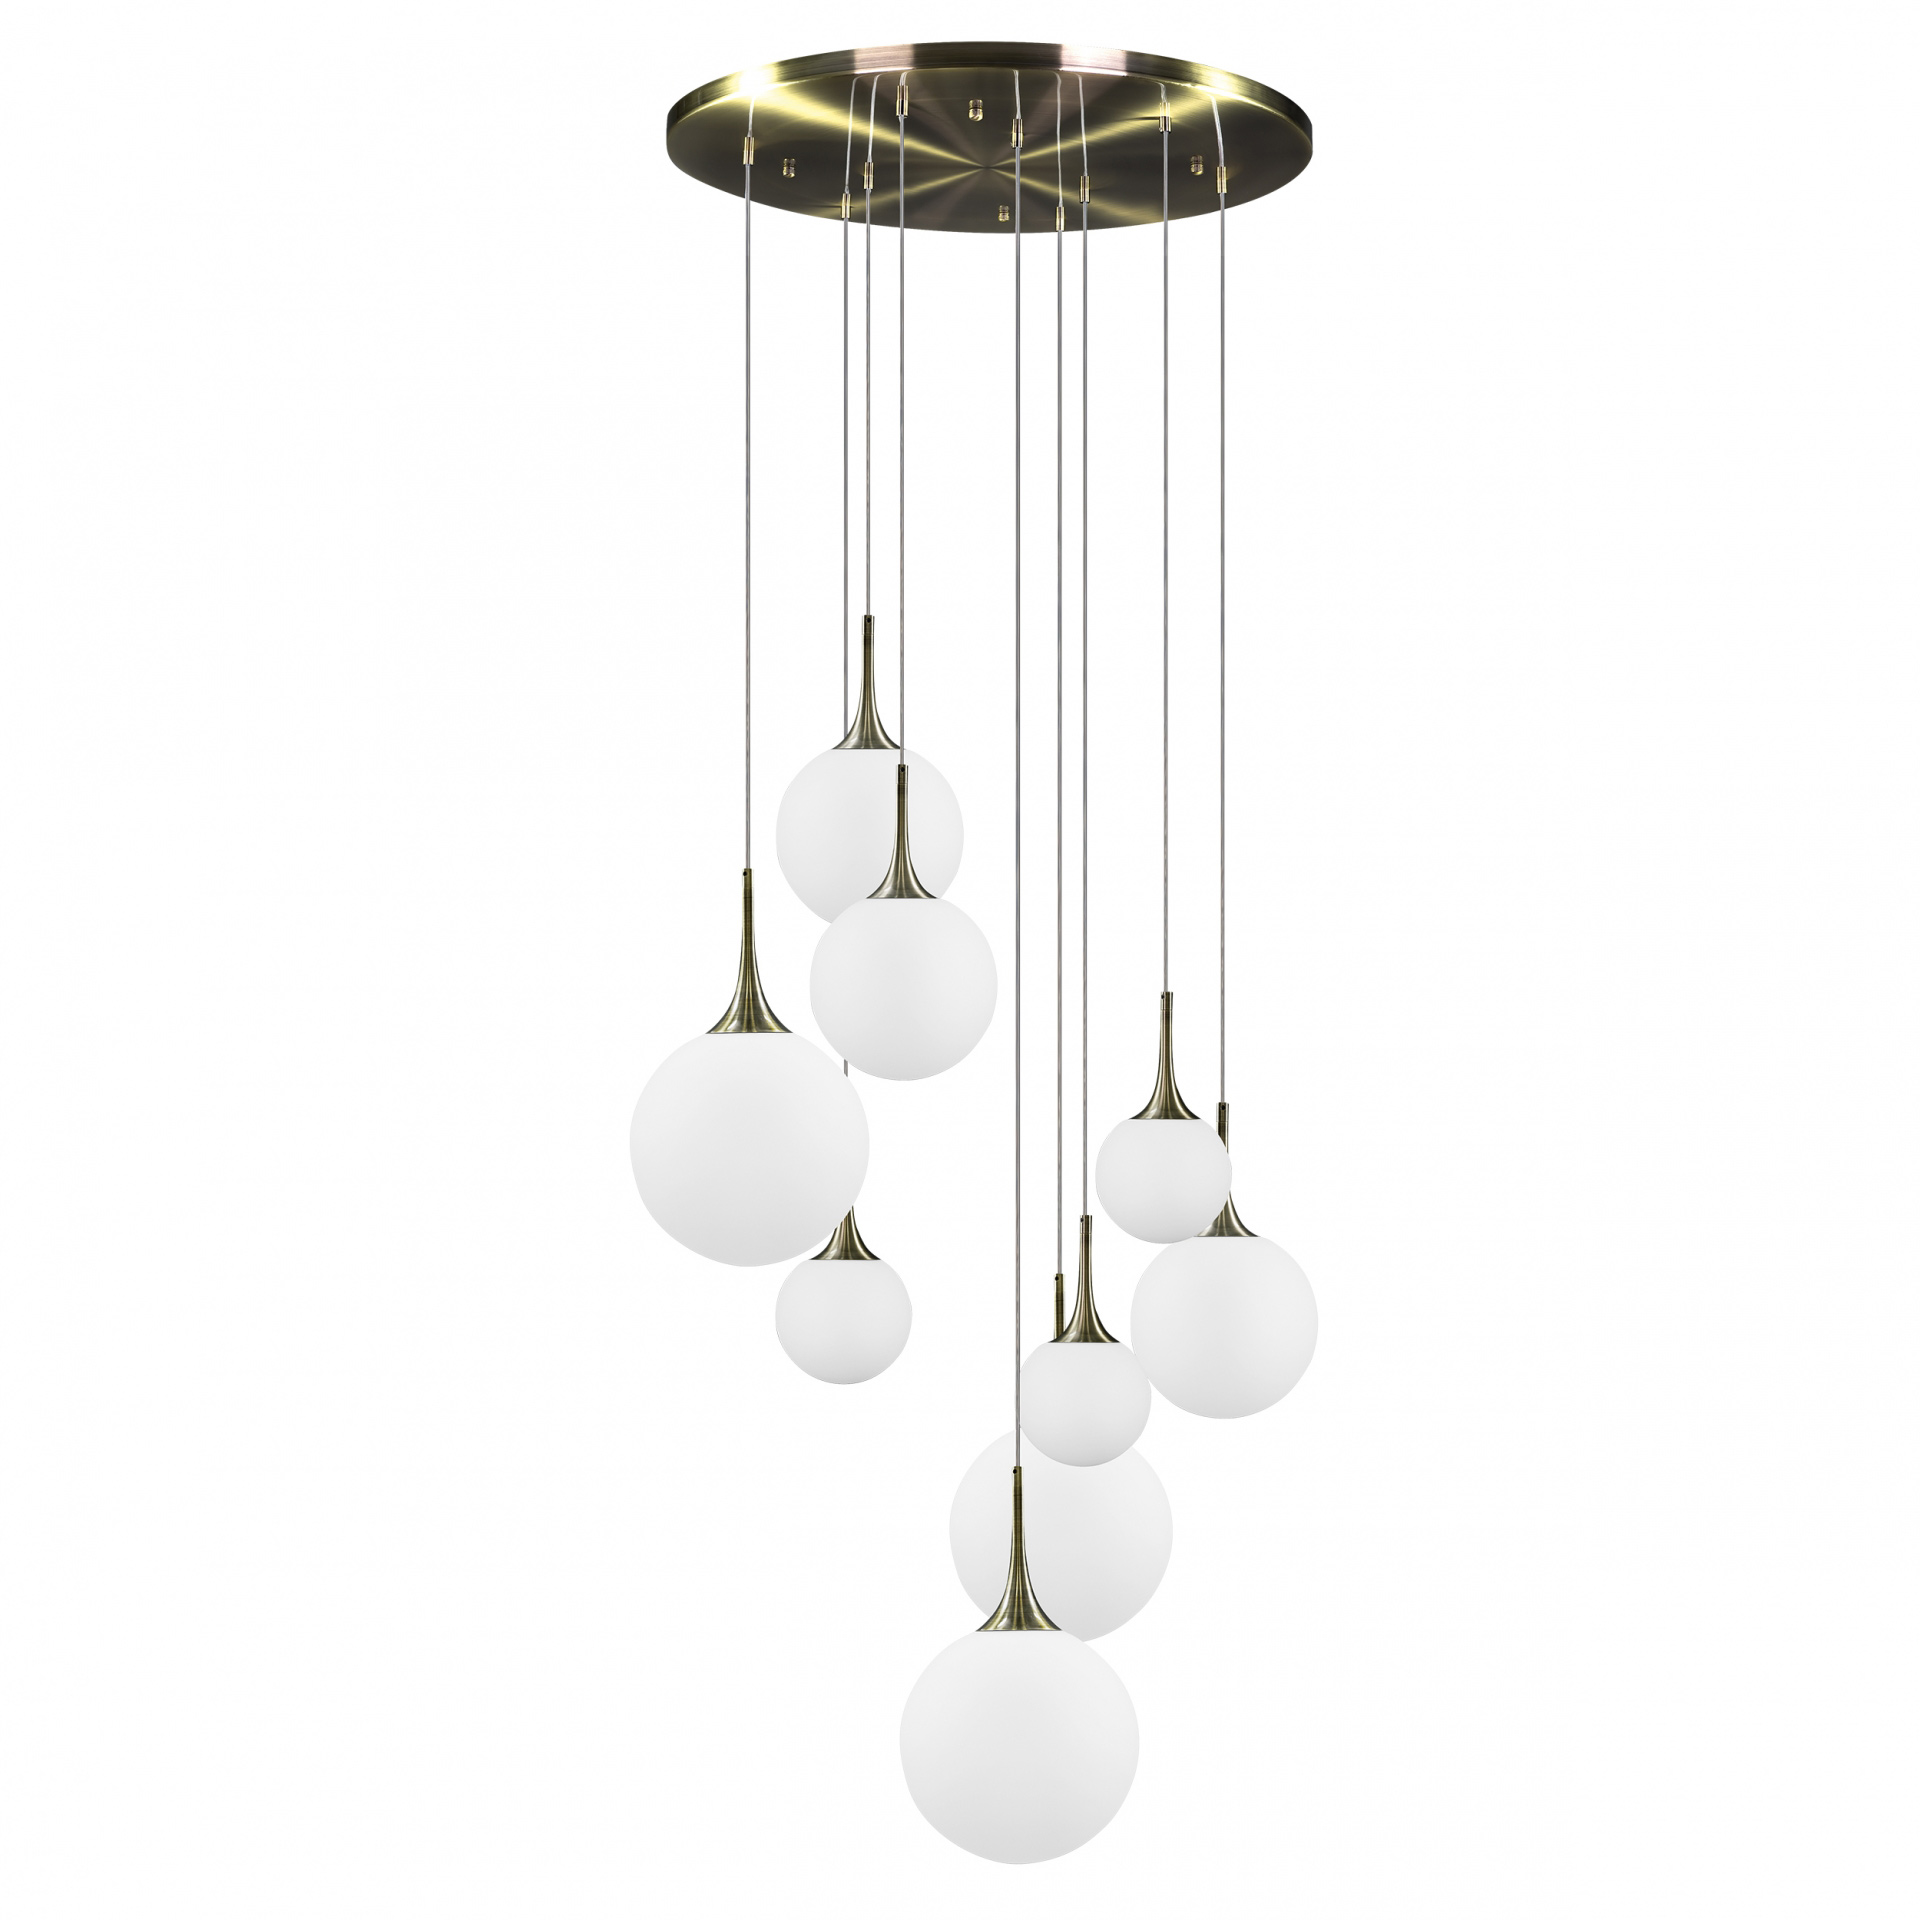 Подвес Globo 9х40W E14 electroplating bronze / white Lightstar 813091